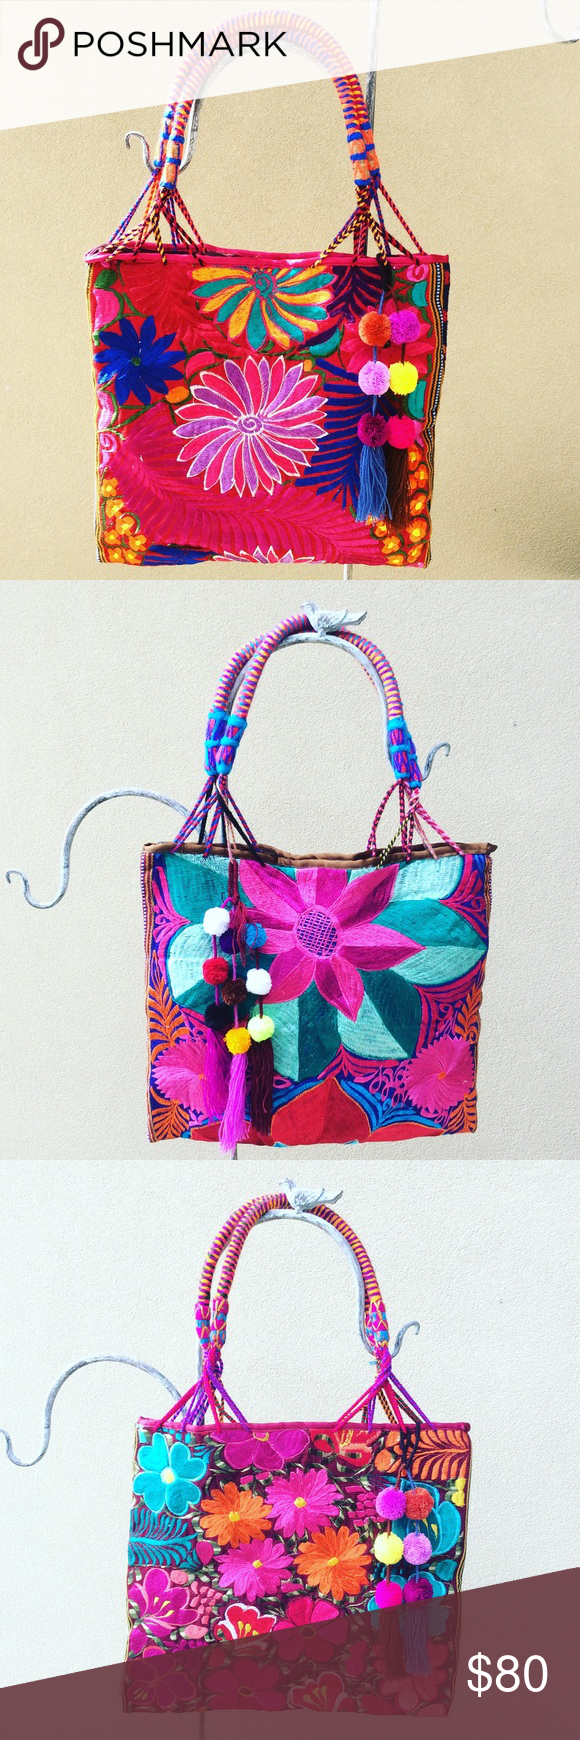 Mexican Embroidered Handbag Tote with Pompoms Handmade in Mexico! New, no tags. Cielito Lindo Bags Totes